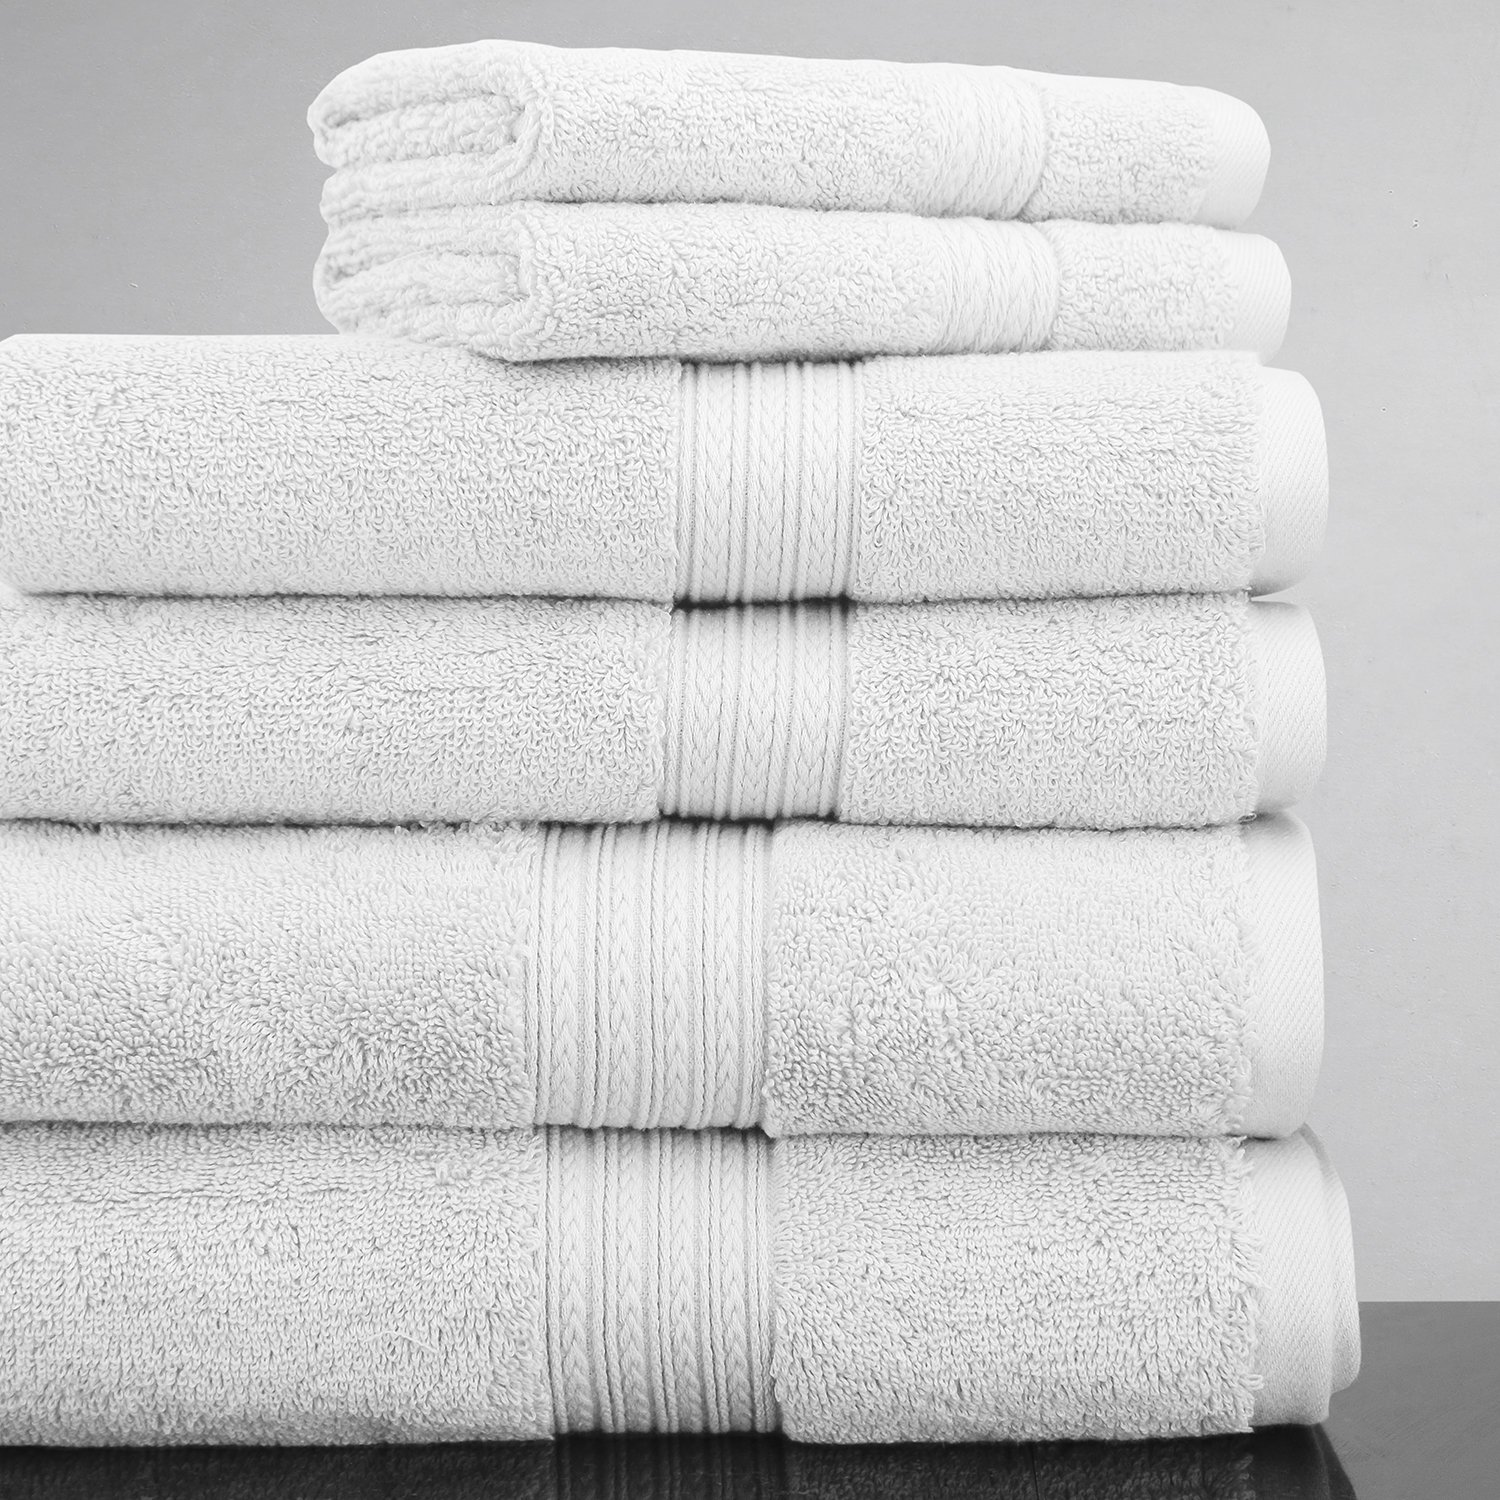 Luxor Linens 100% Egyptian Cotton Luxury 6-Piece Towel Set - White - His & Hers in Gift Packaging